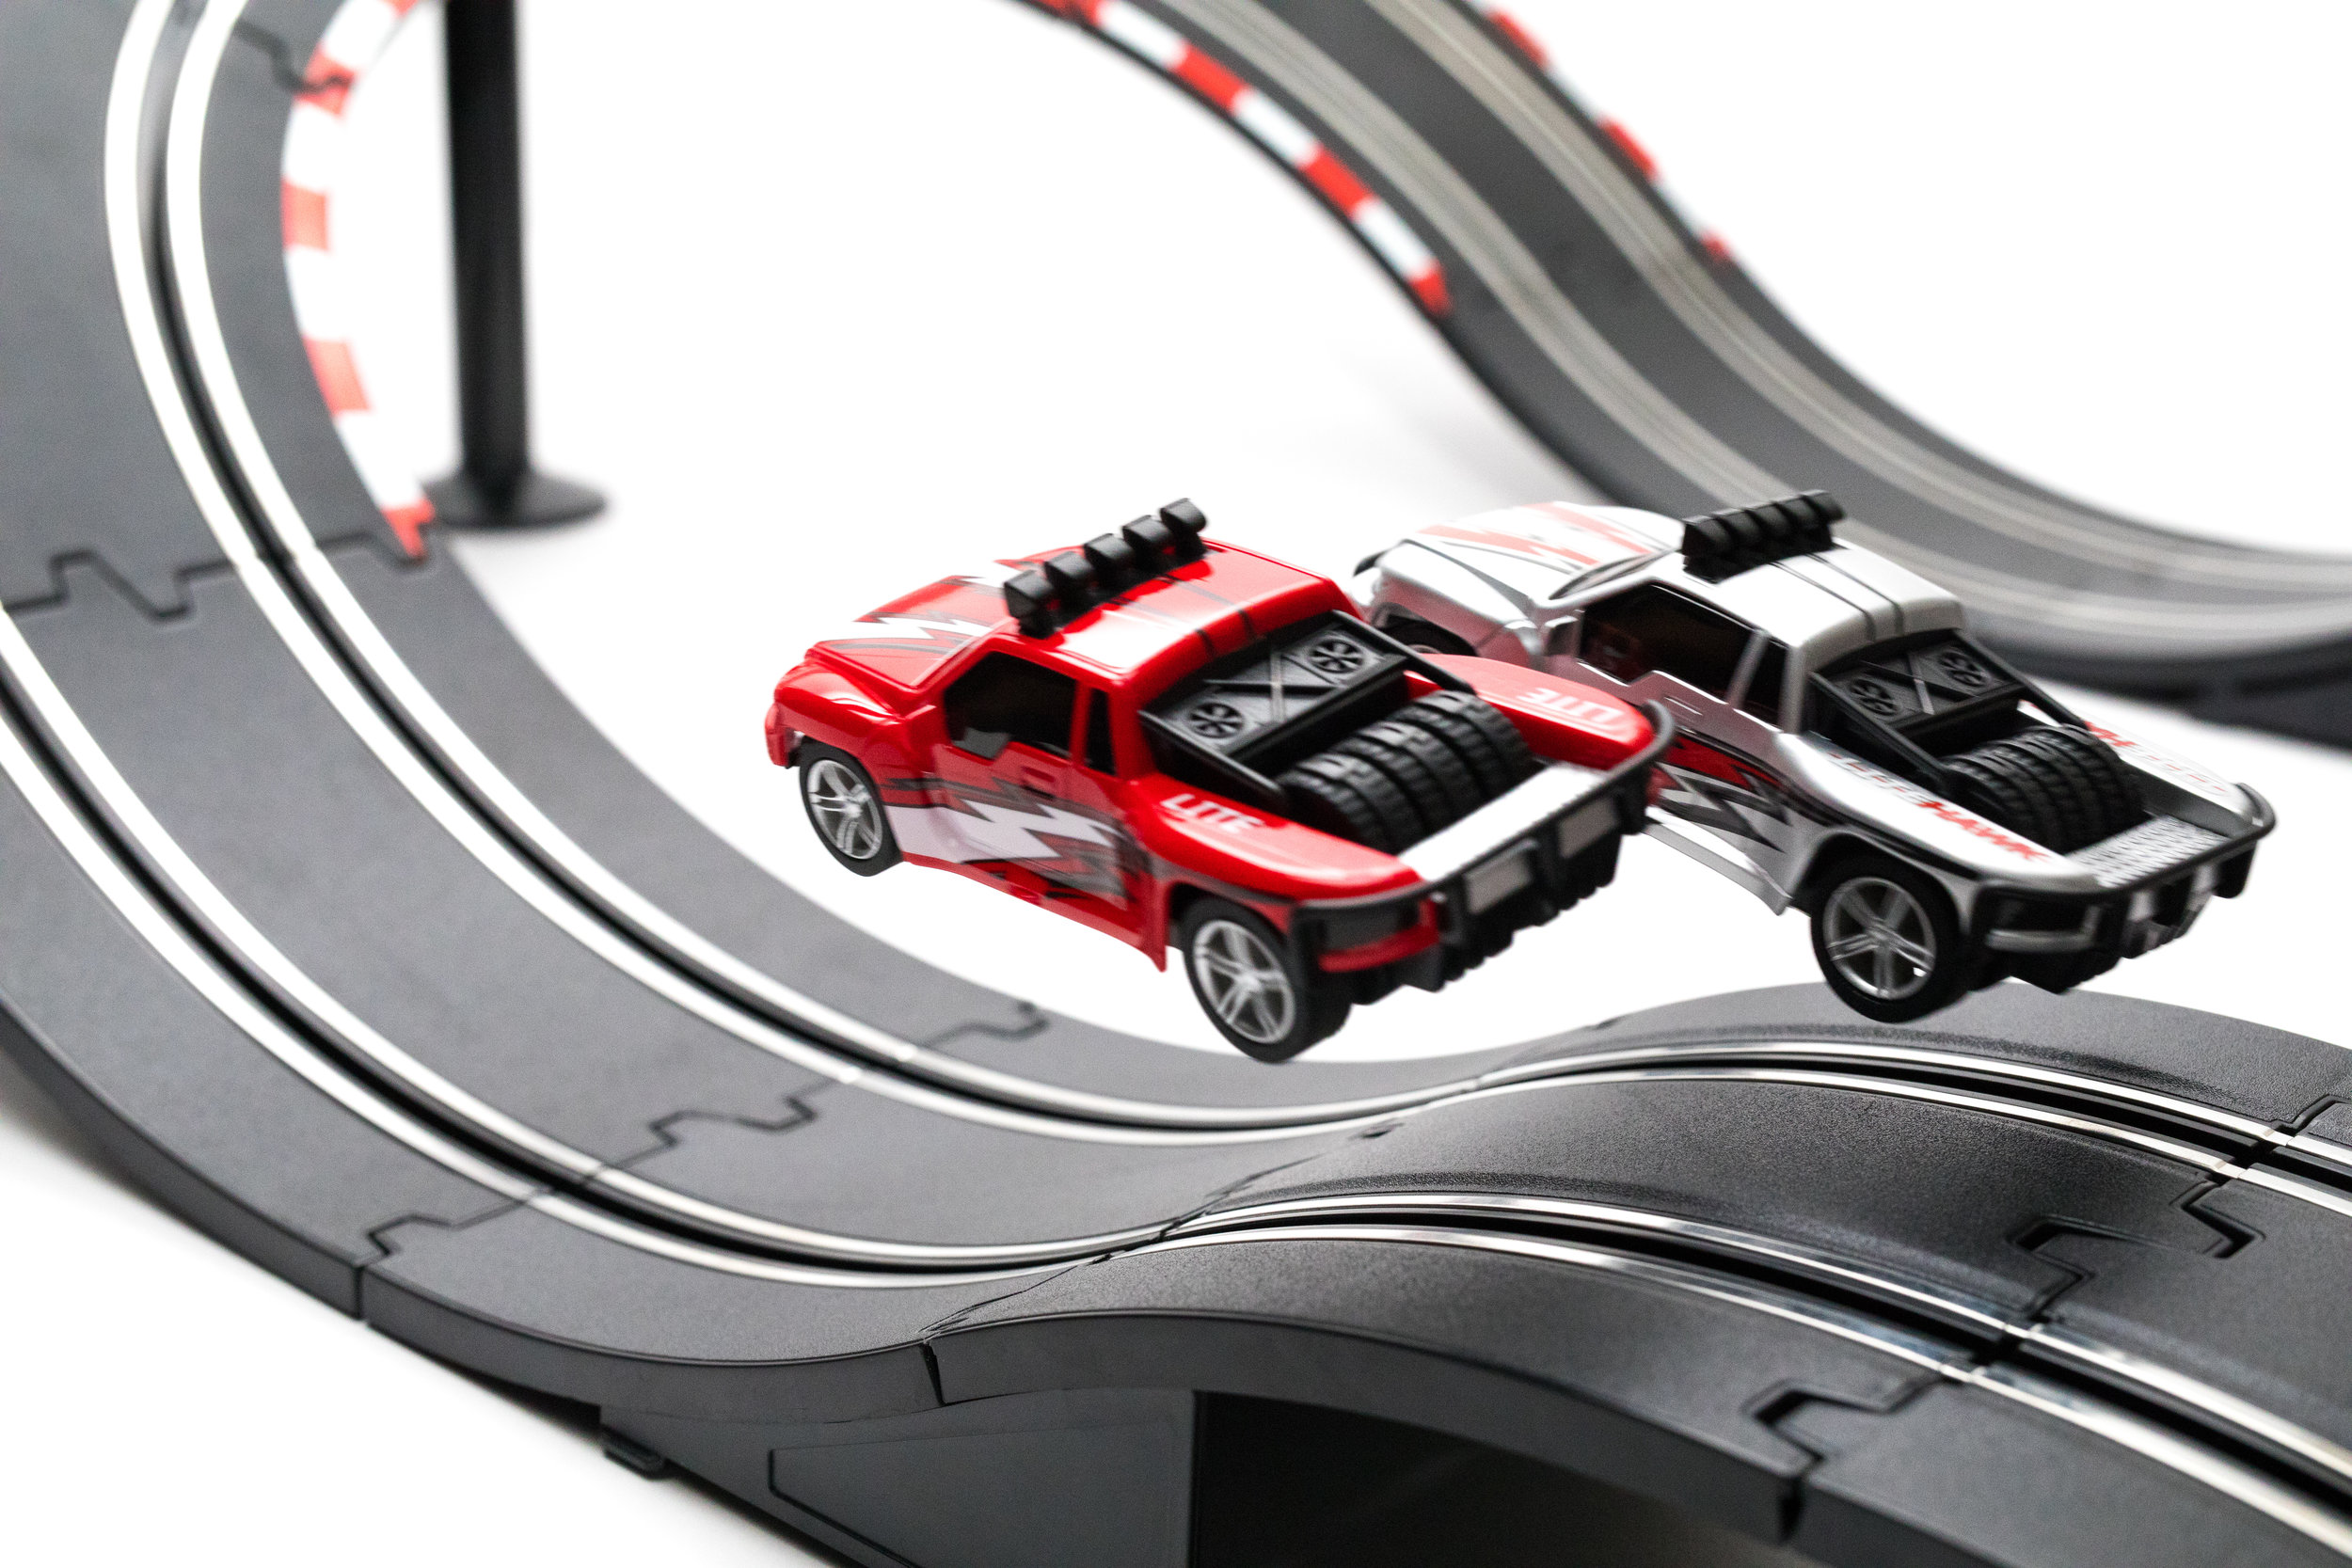 Get Some Big Air! - The Stadium Racers set is built for airborne action! Race around the track navigating jumps and sticking the landing! If you've never jumped a slot car, Stadium Racers will put a smile on your face.